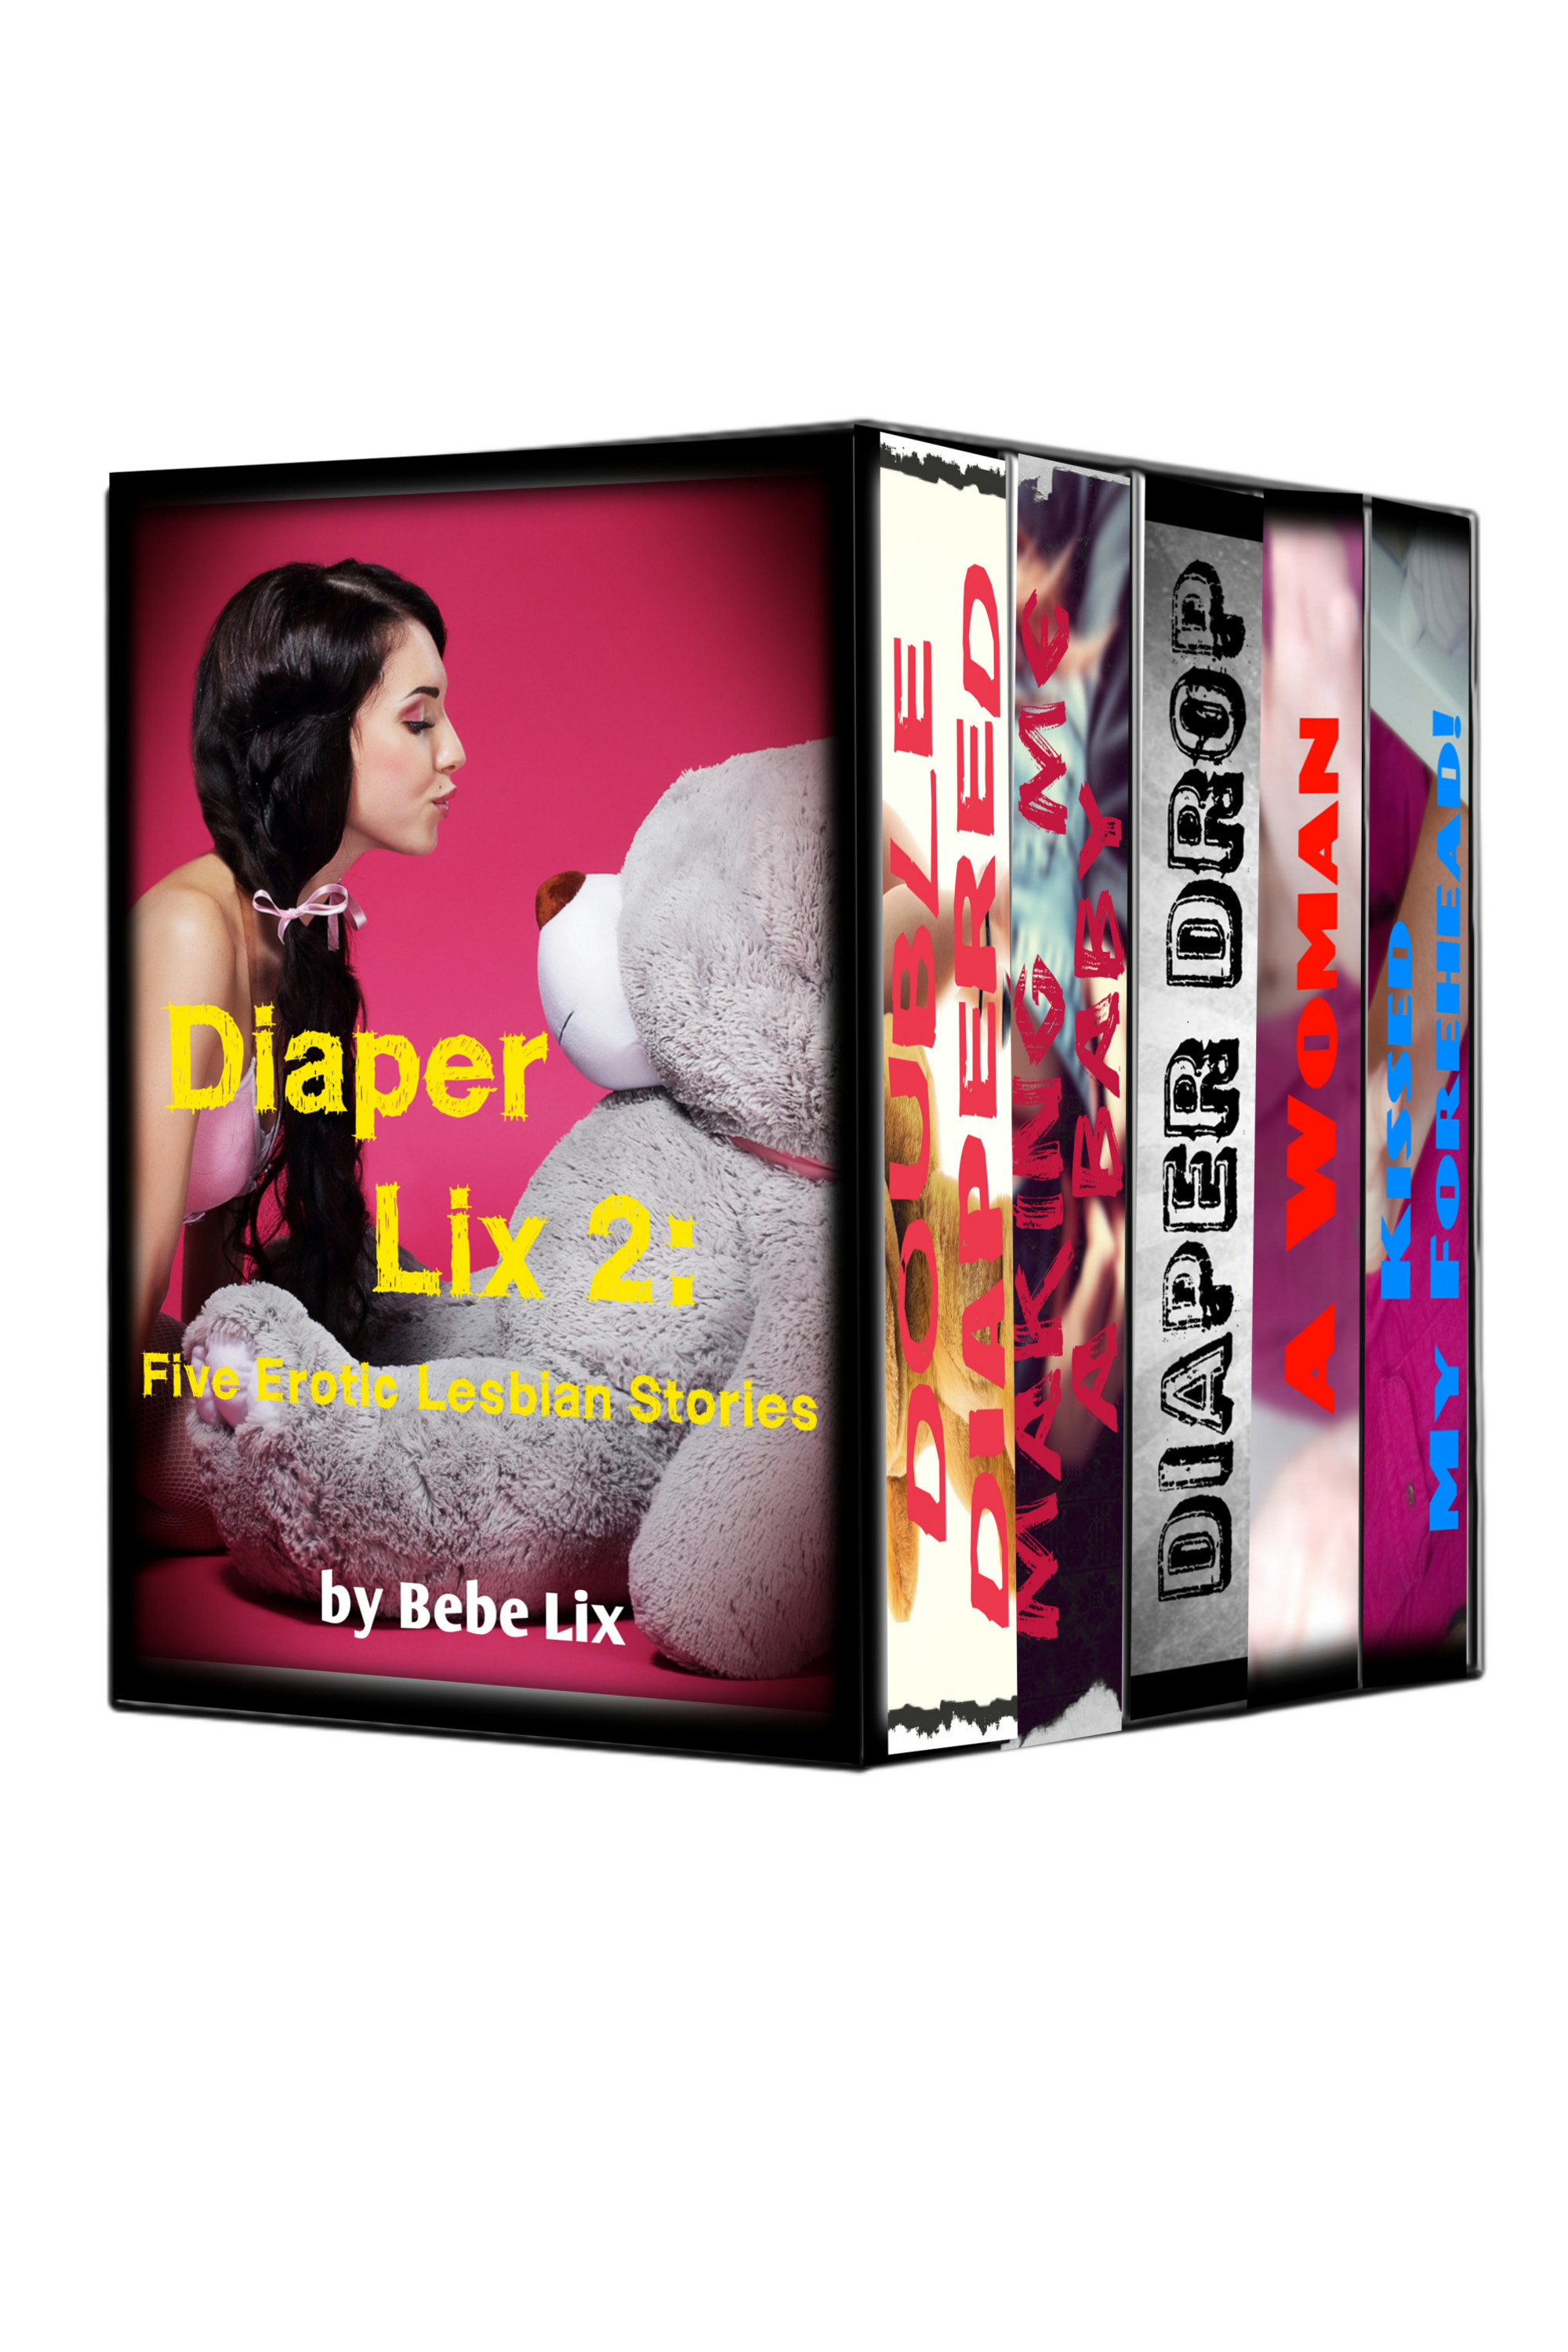 Bebe Lix - Diaper Lix 2: Five Erotic Lesbian Stories